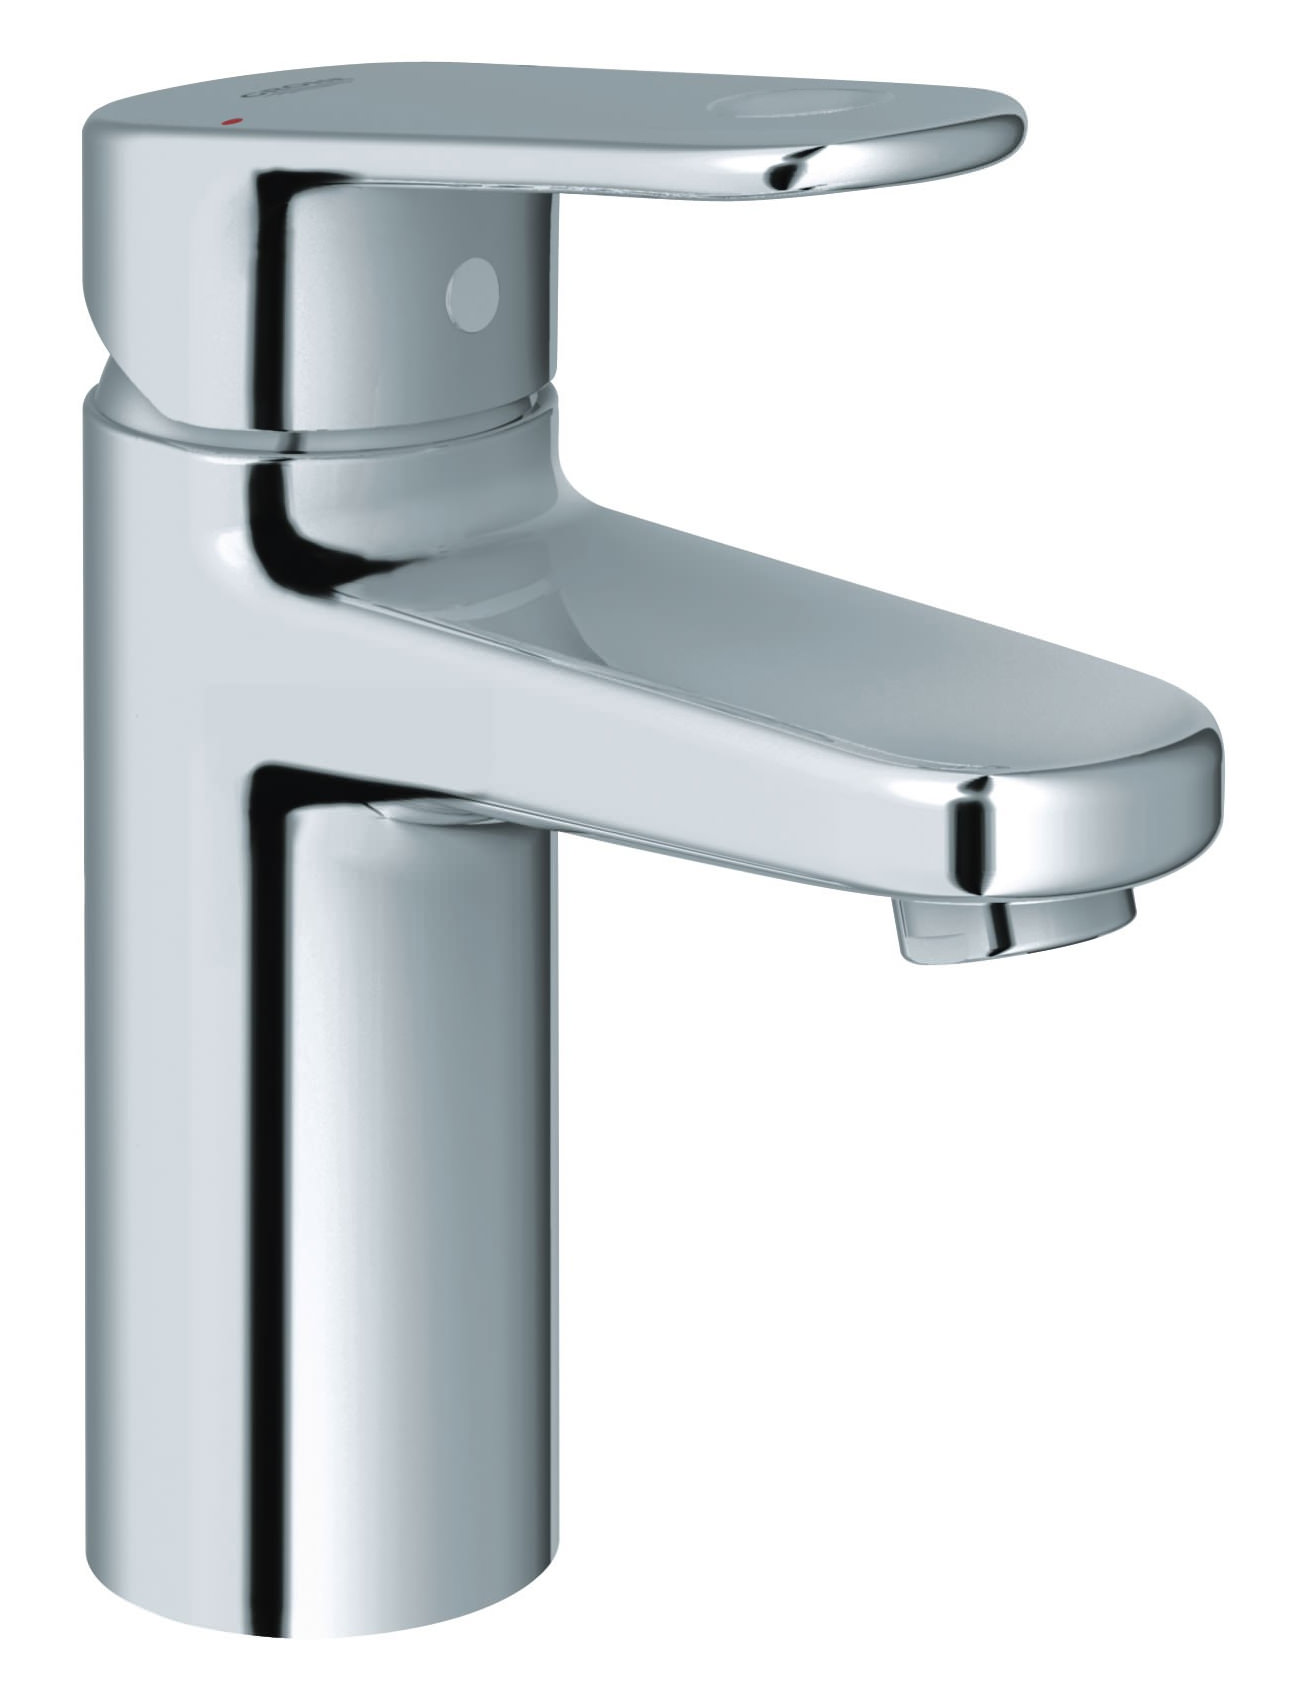 grohe europlus monobloc single lever chrome basin mixer tap. Black Bedroom Furniture Sets. Home Design Ideas